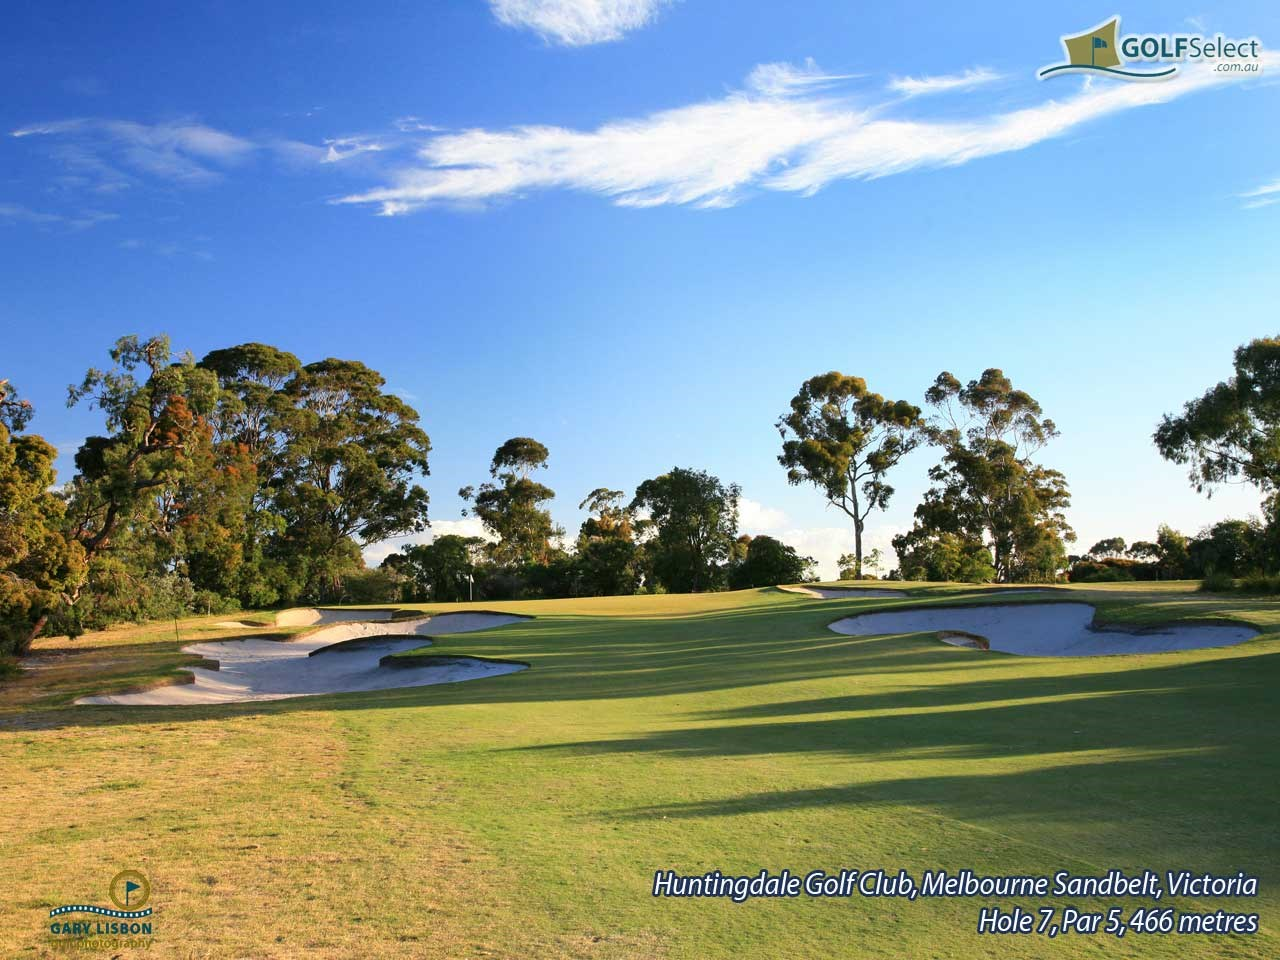 Huntingdale Golf Club Hole 7, Par 5, 466 metres